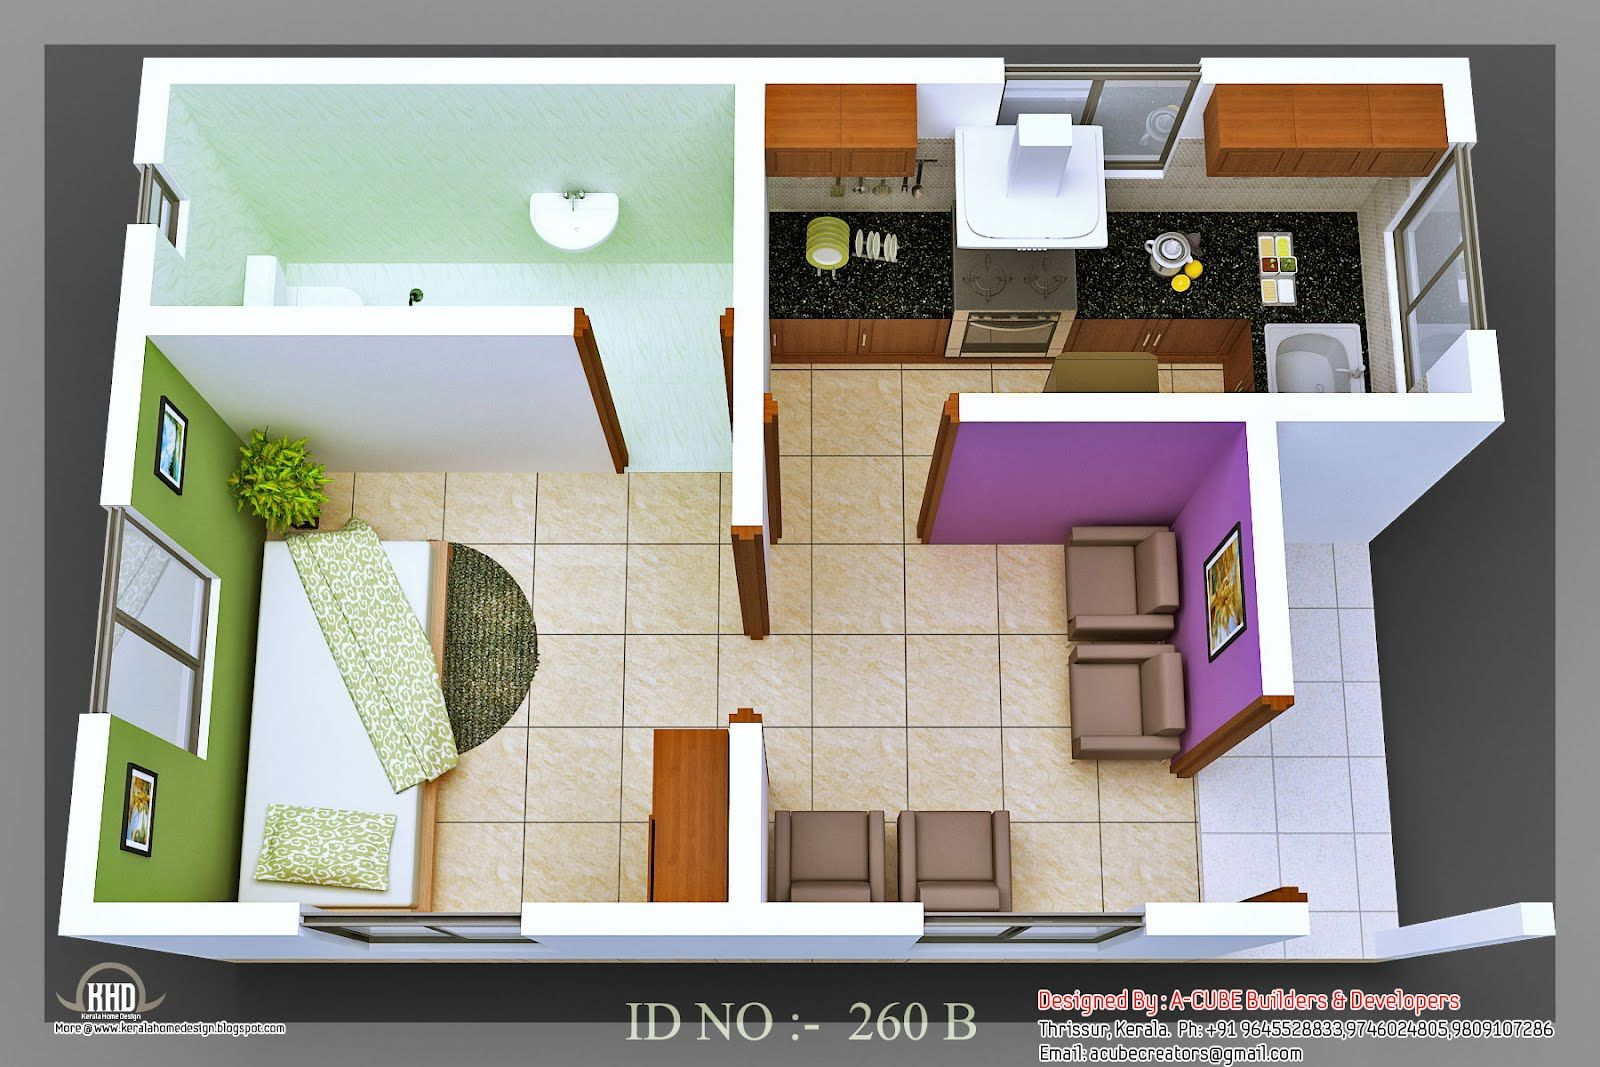 3d isometric views of small house plans - kerala home design and